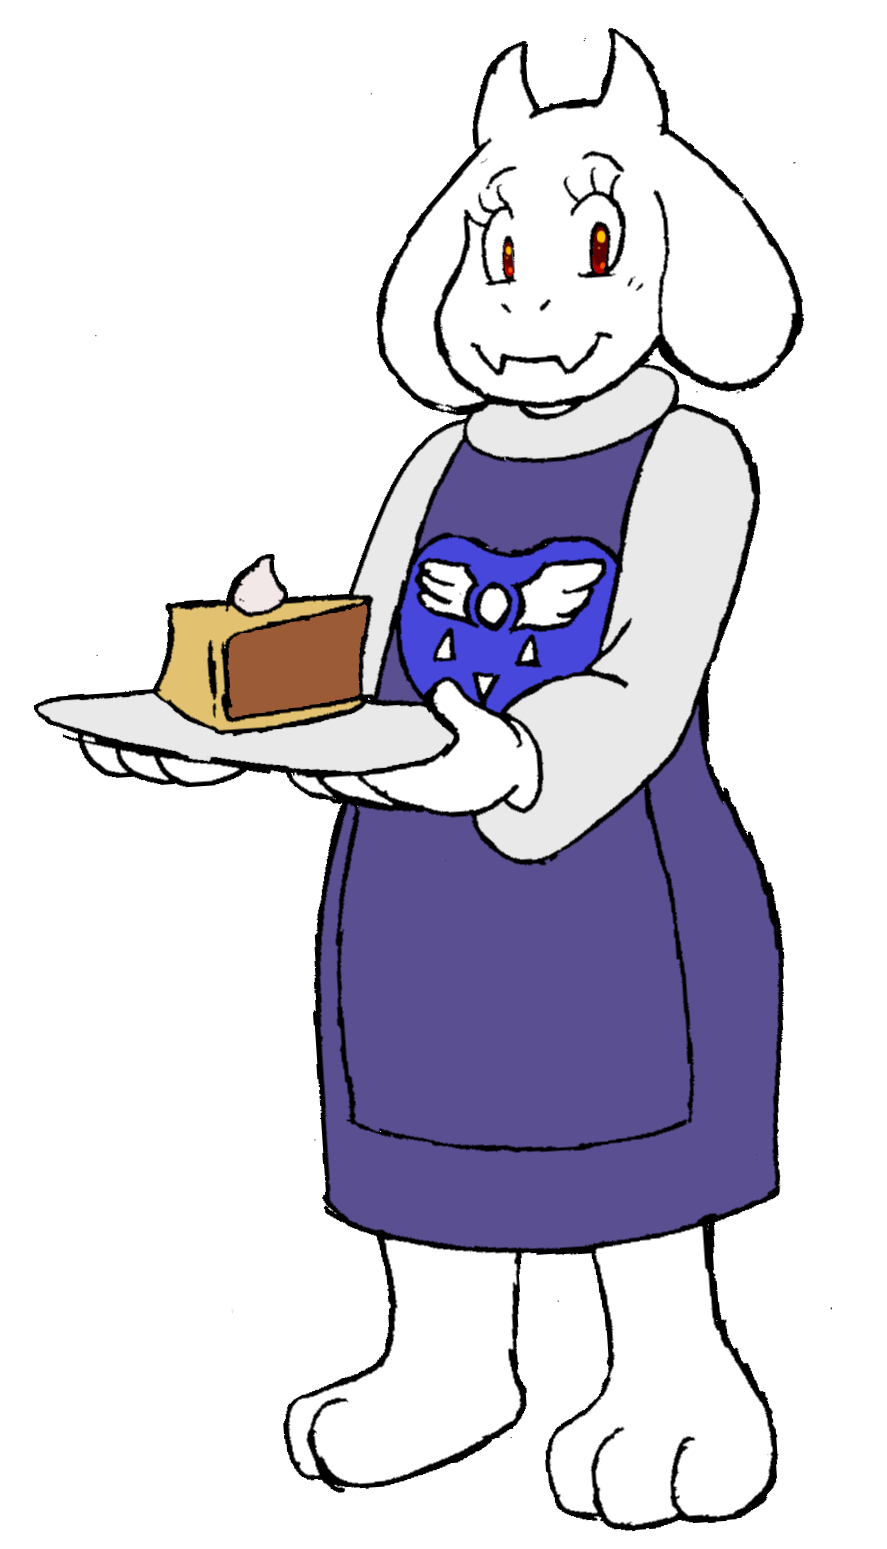 Toriel undertale png. Popularity contest off topic